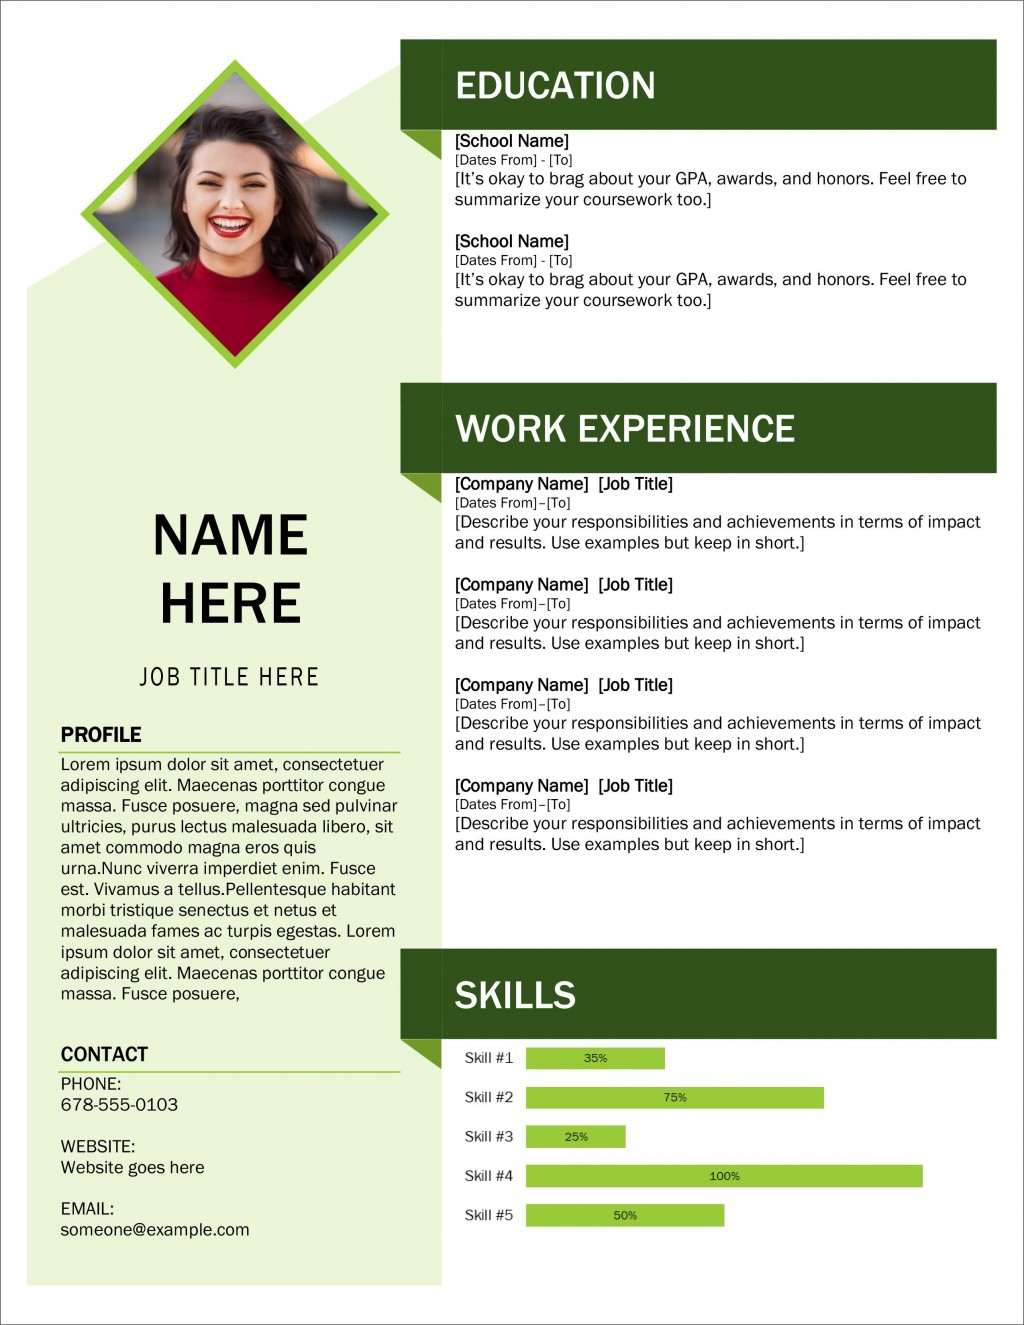 005 Exceptional Download Resume Template Word 2007 High Def Large